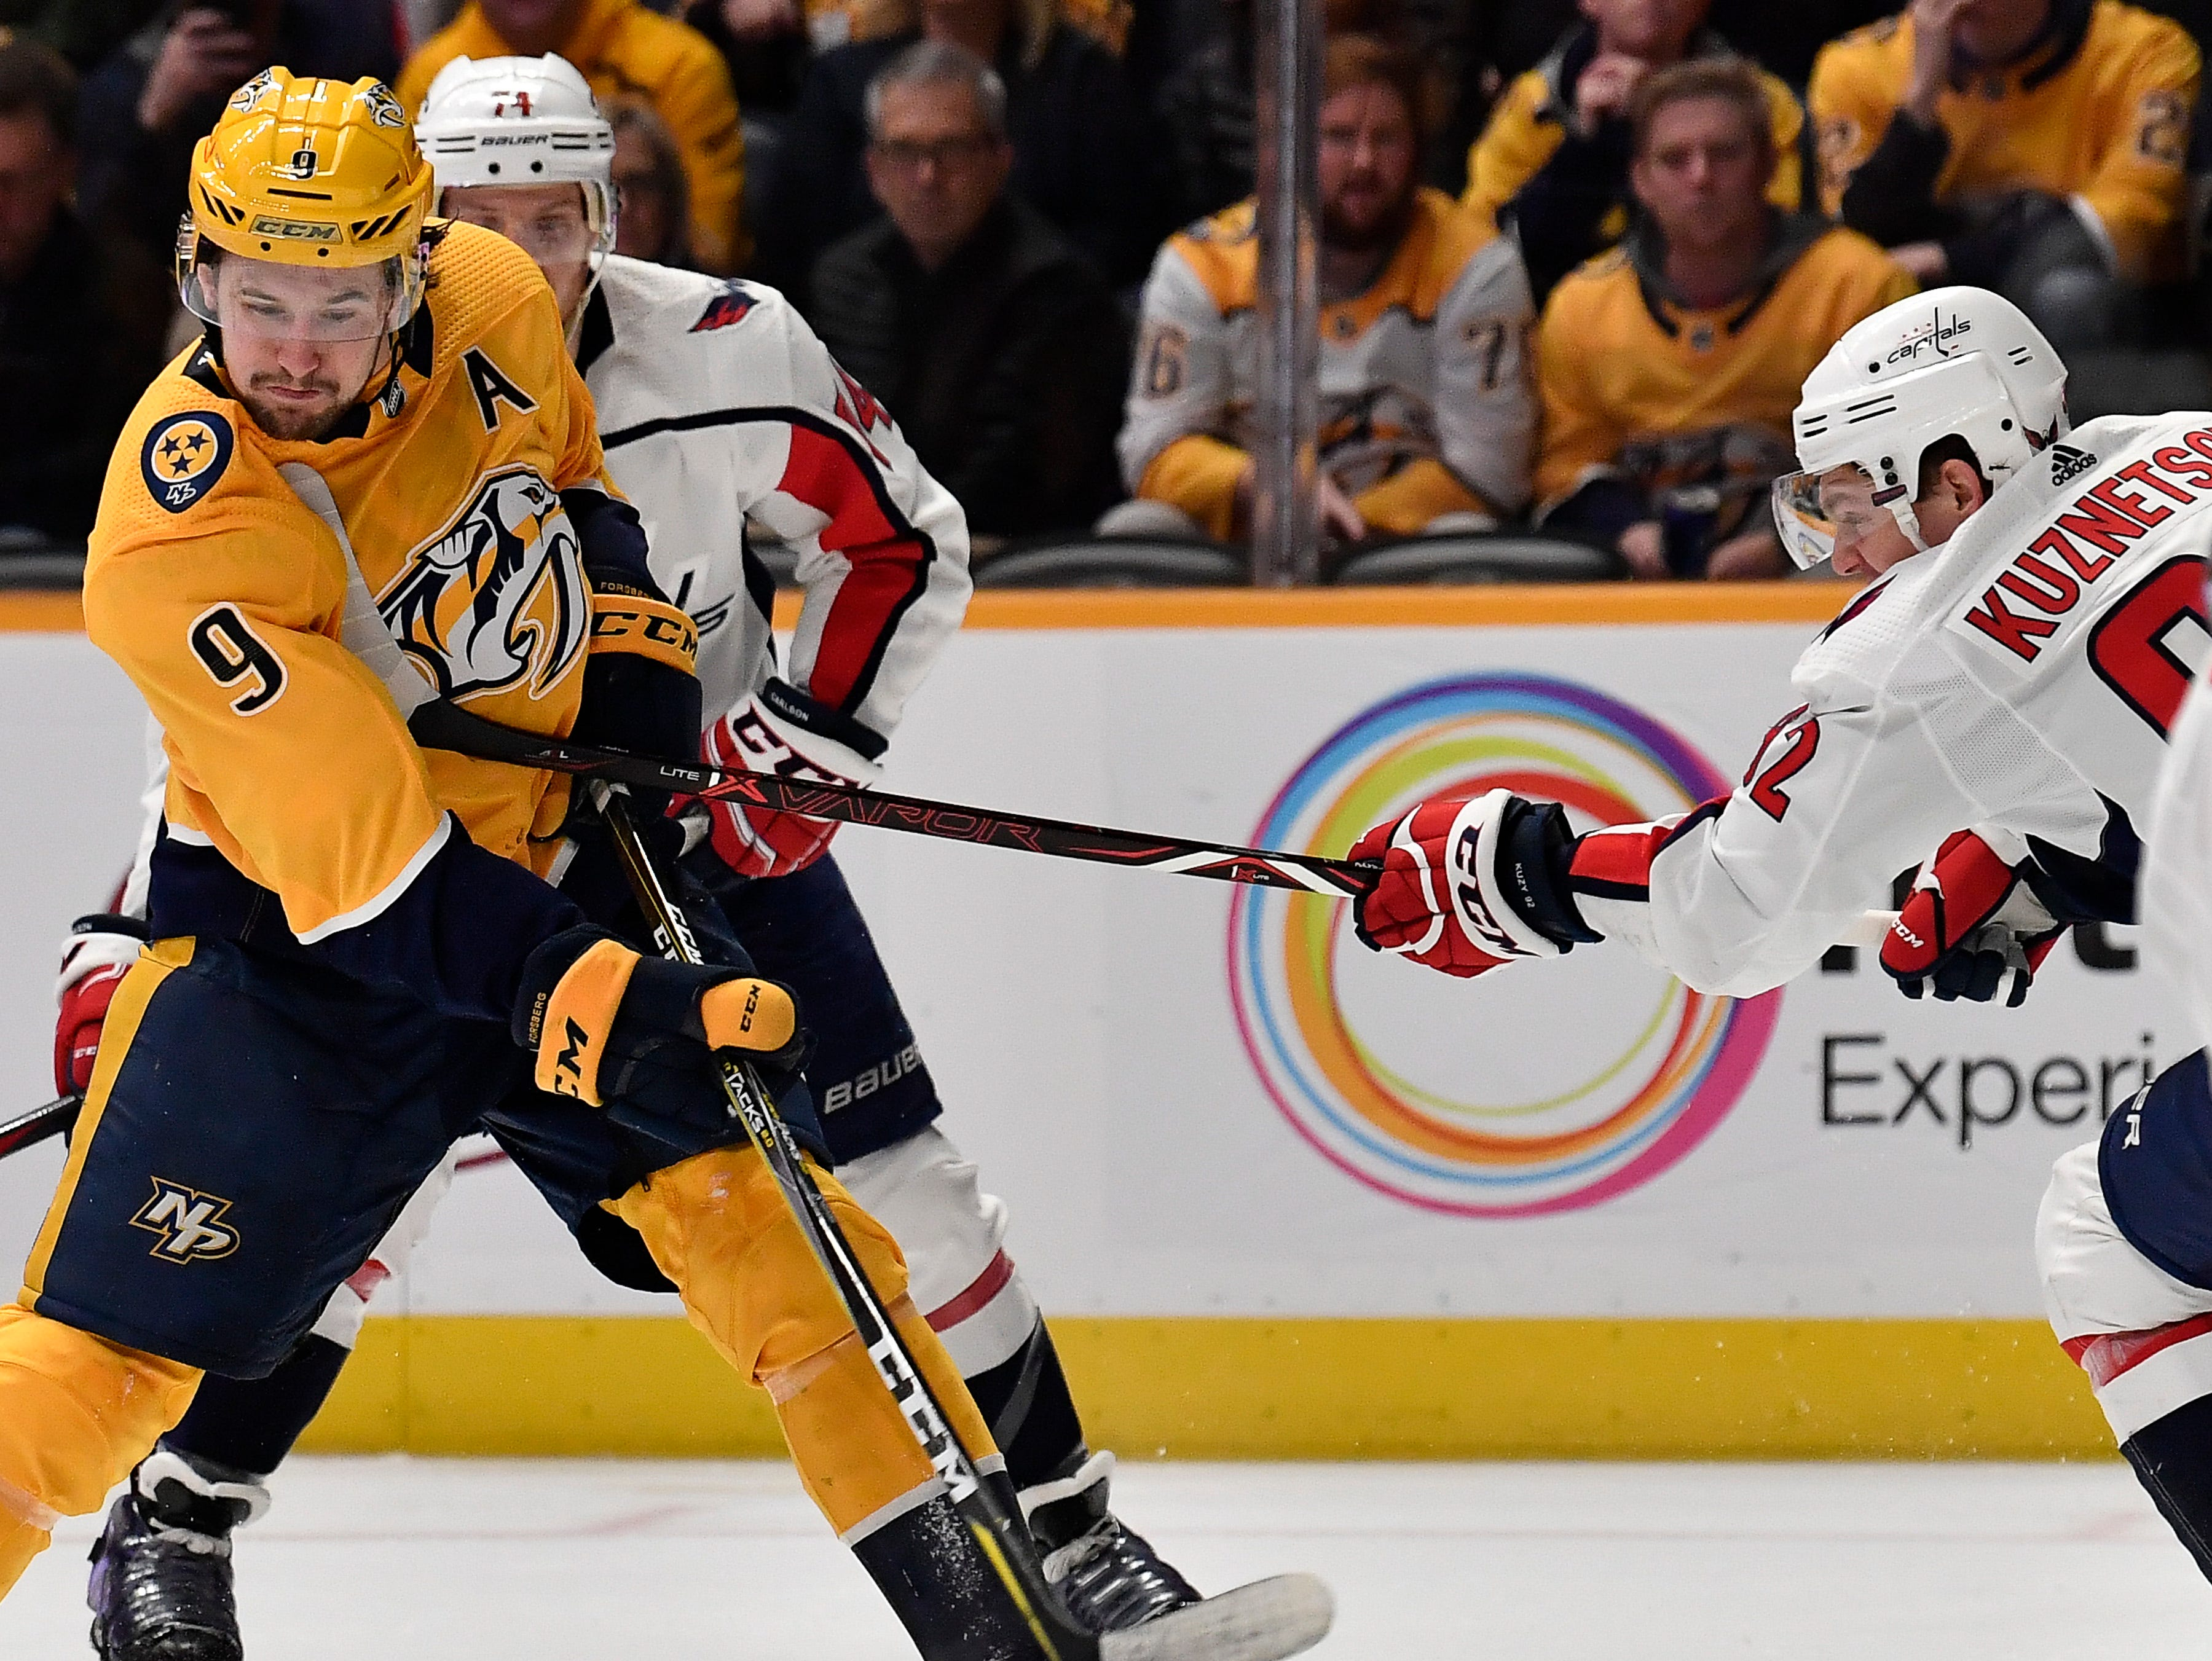 Predators left wing Filip Forsberg (9) takes a high stick from Capitals center Evgeny Kuznetsov (92) as he shoots during the third period at Bridgestone Arena Tuesday, Jan. 15, 2019, in Nashville, Tenn.